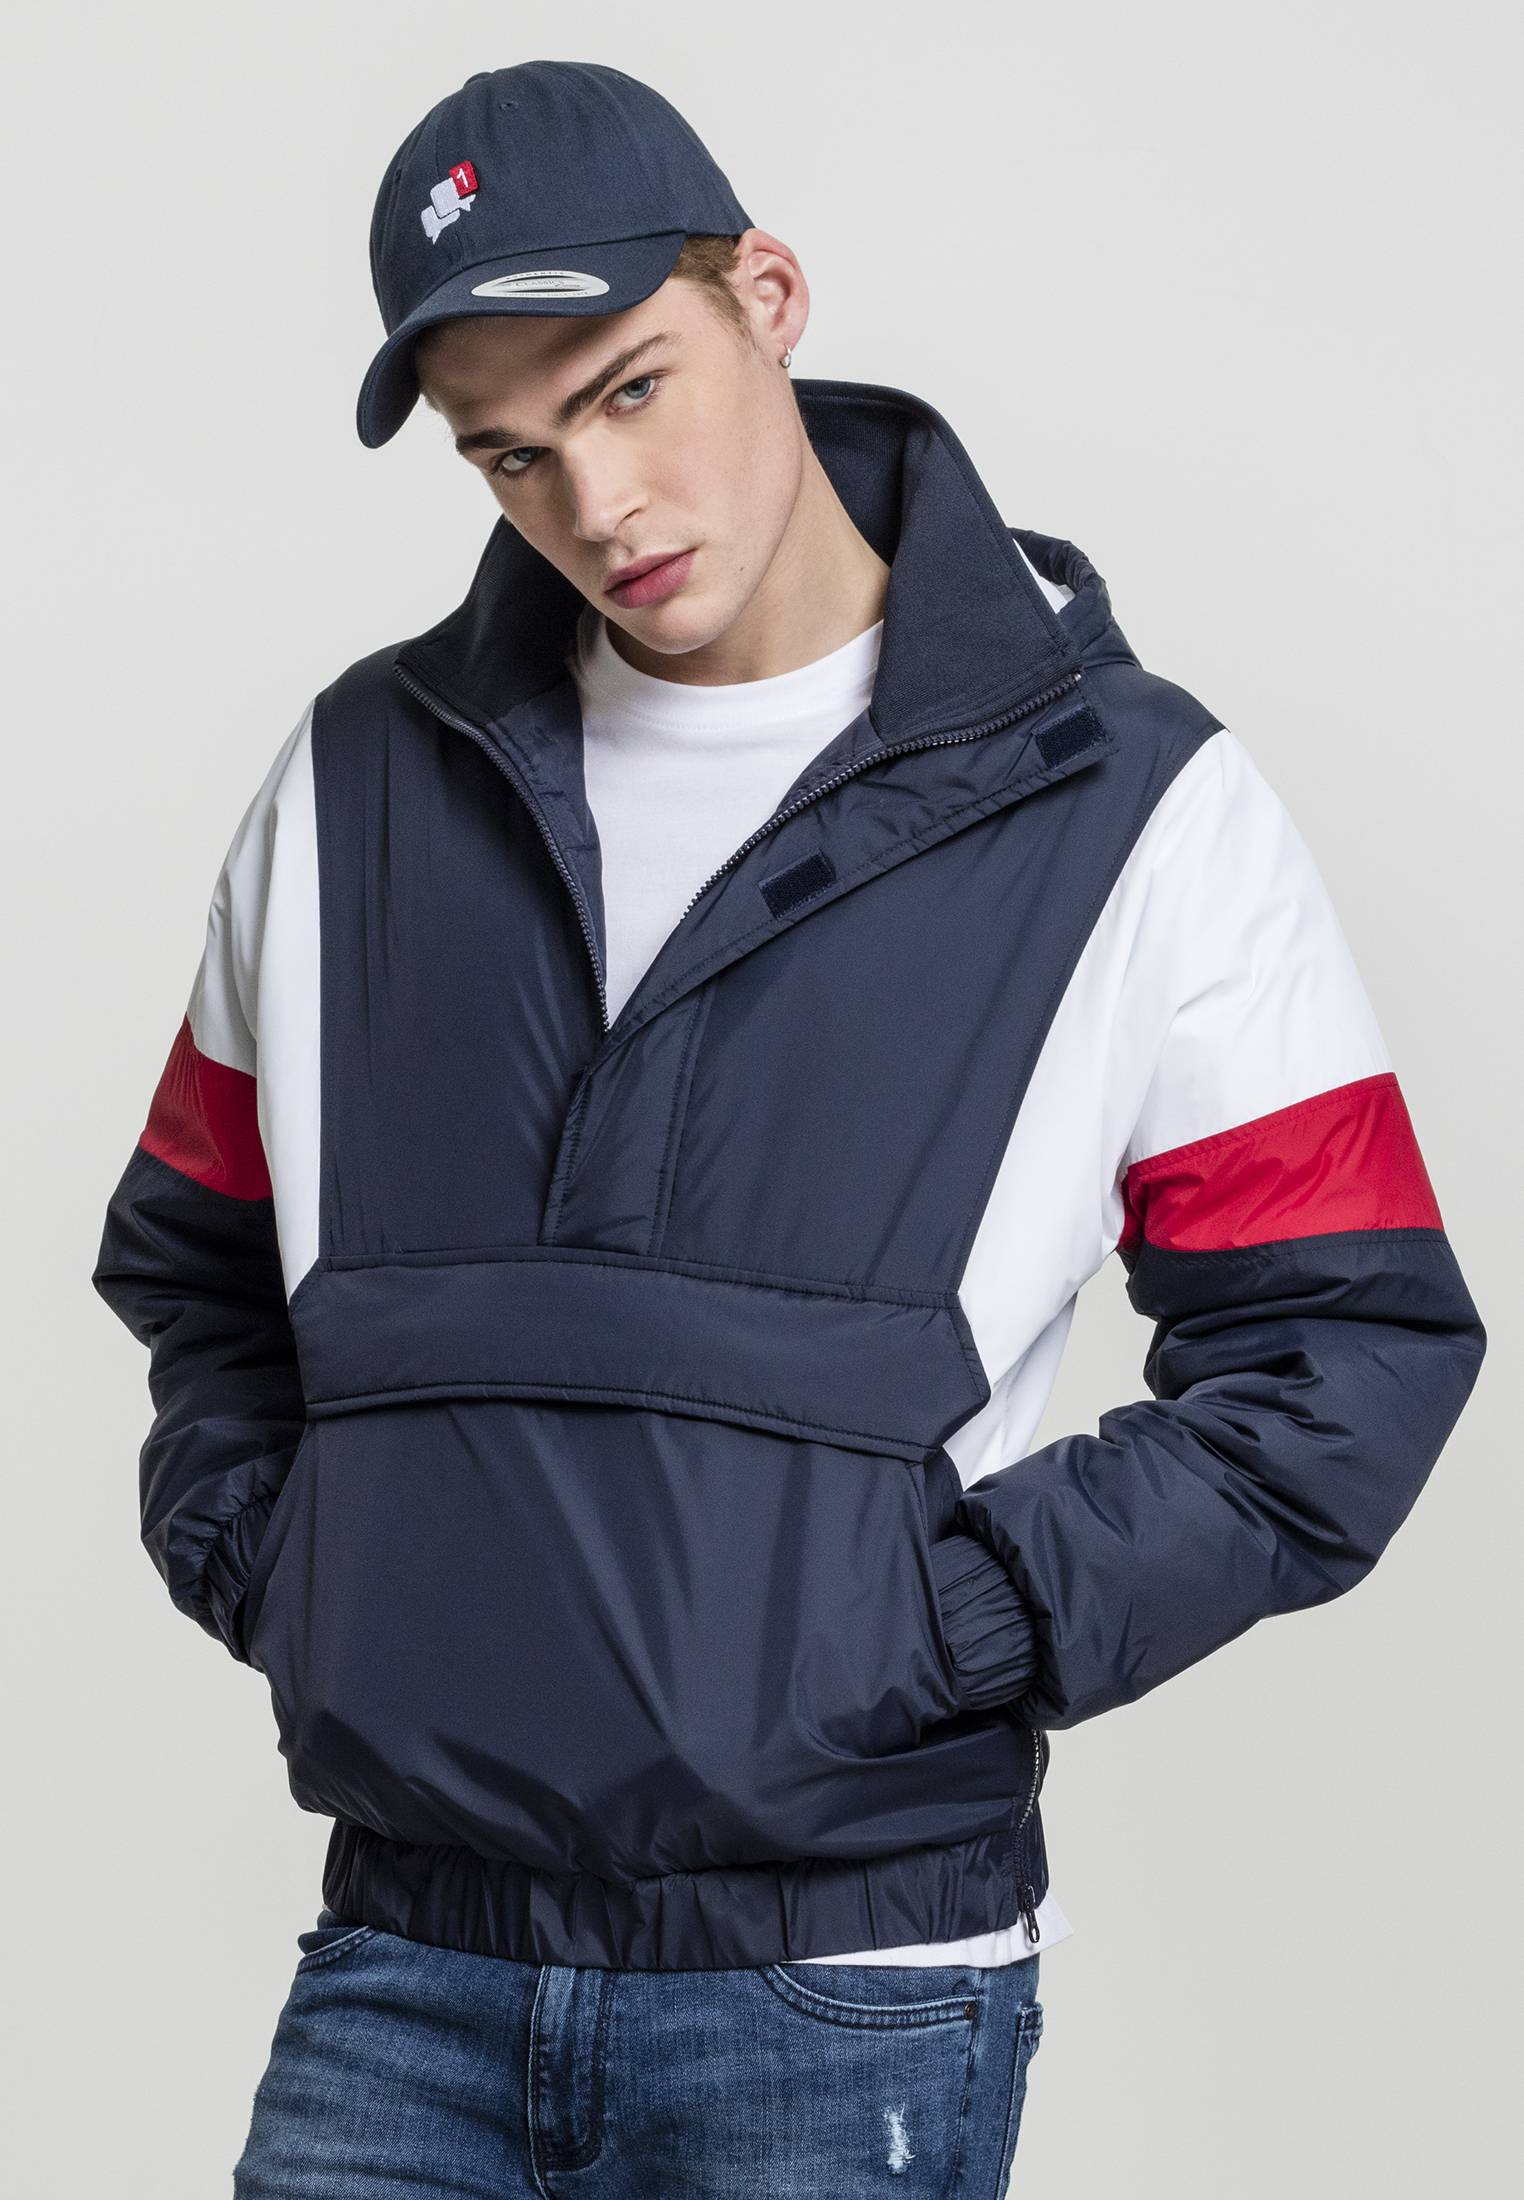 Urban Classics 3-Tone Pull Over Jacket navy/white/fire red - S